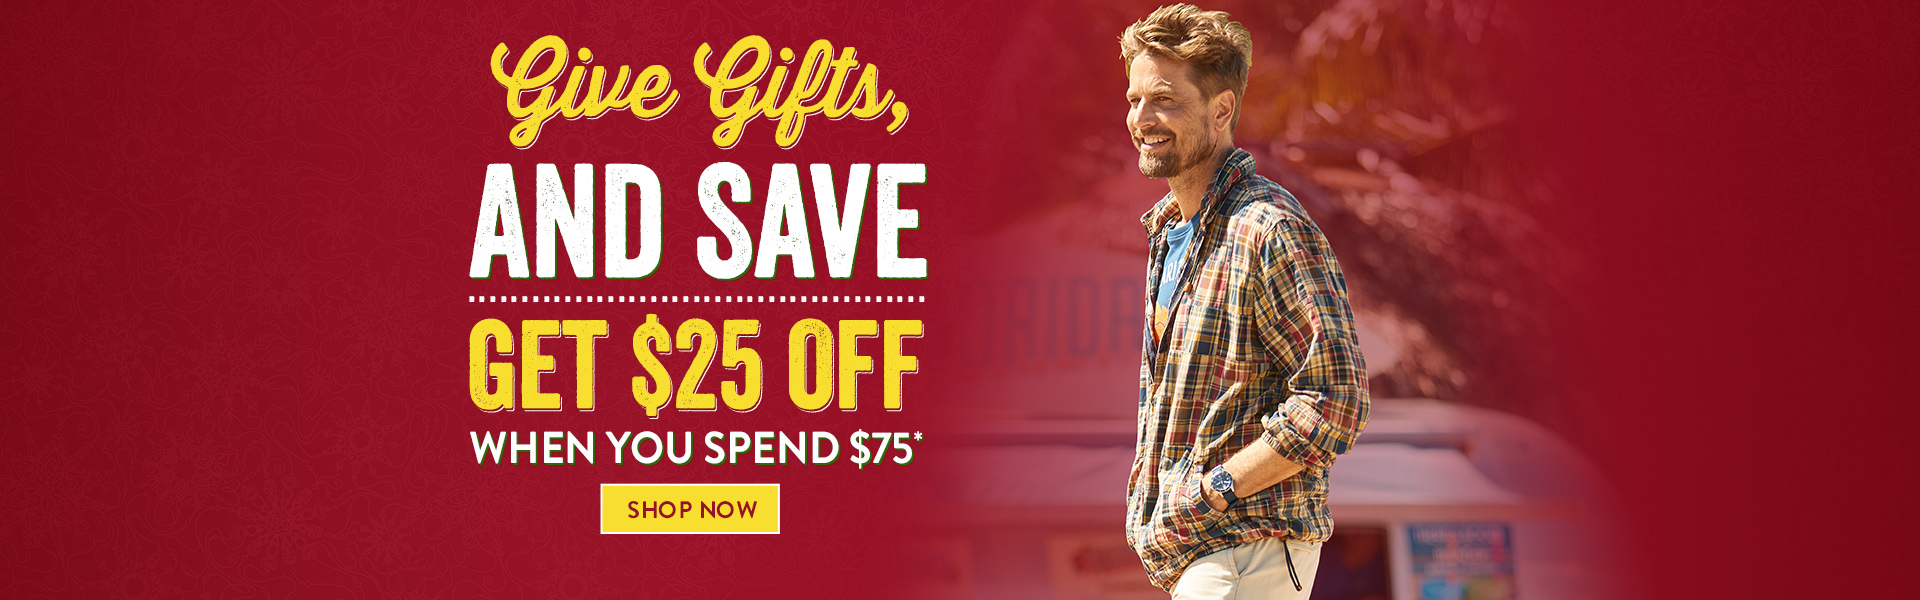 Give Gifts and Save - Get 25 when Spend 75+